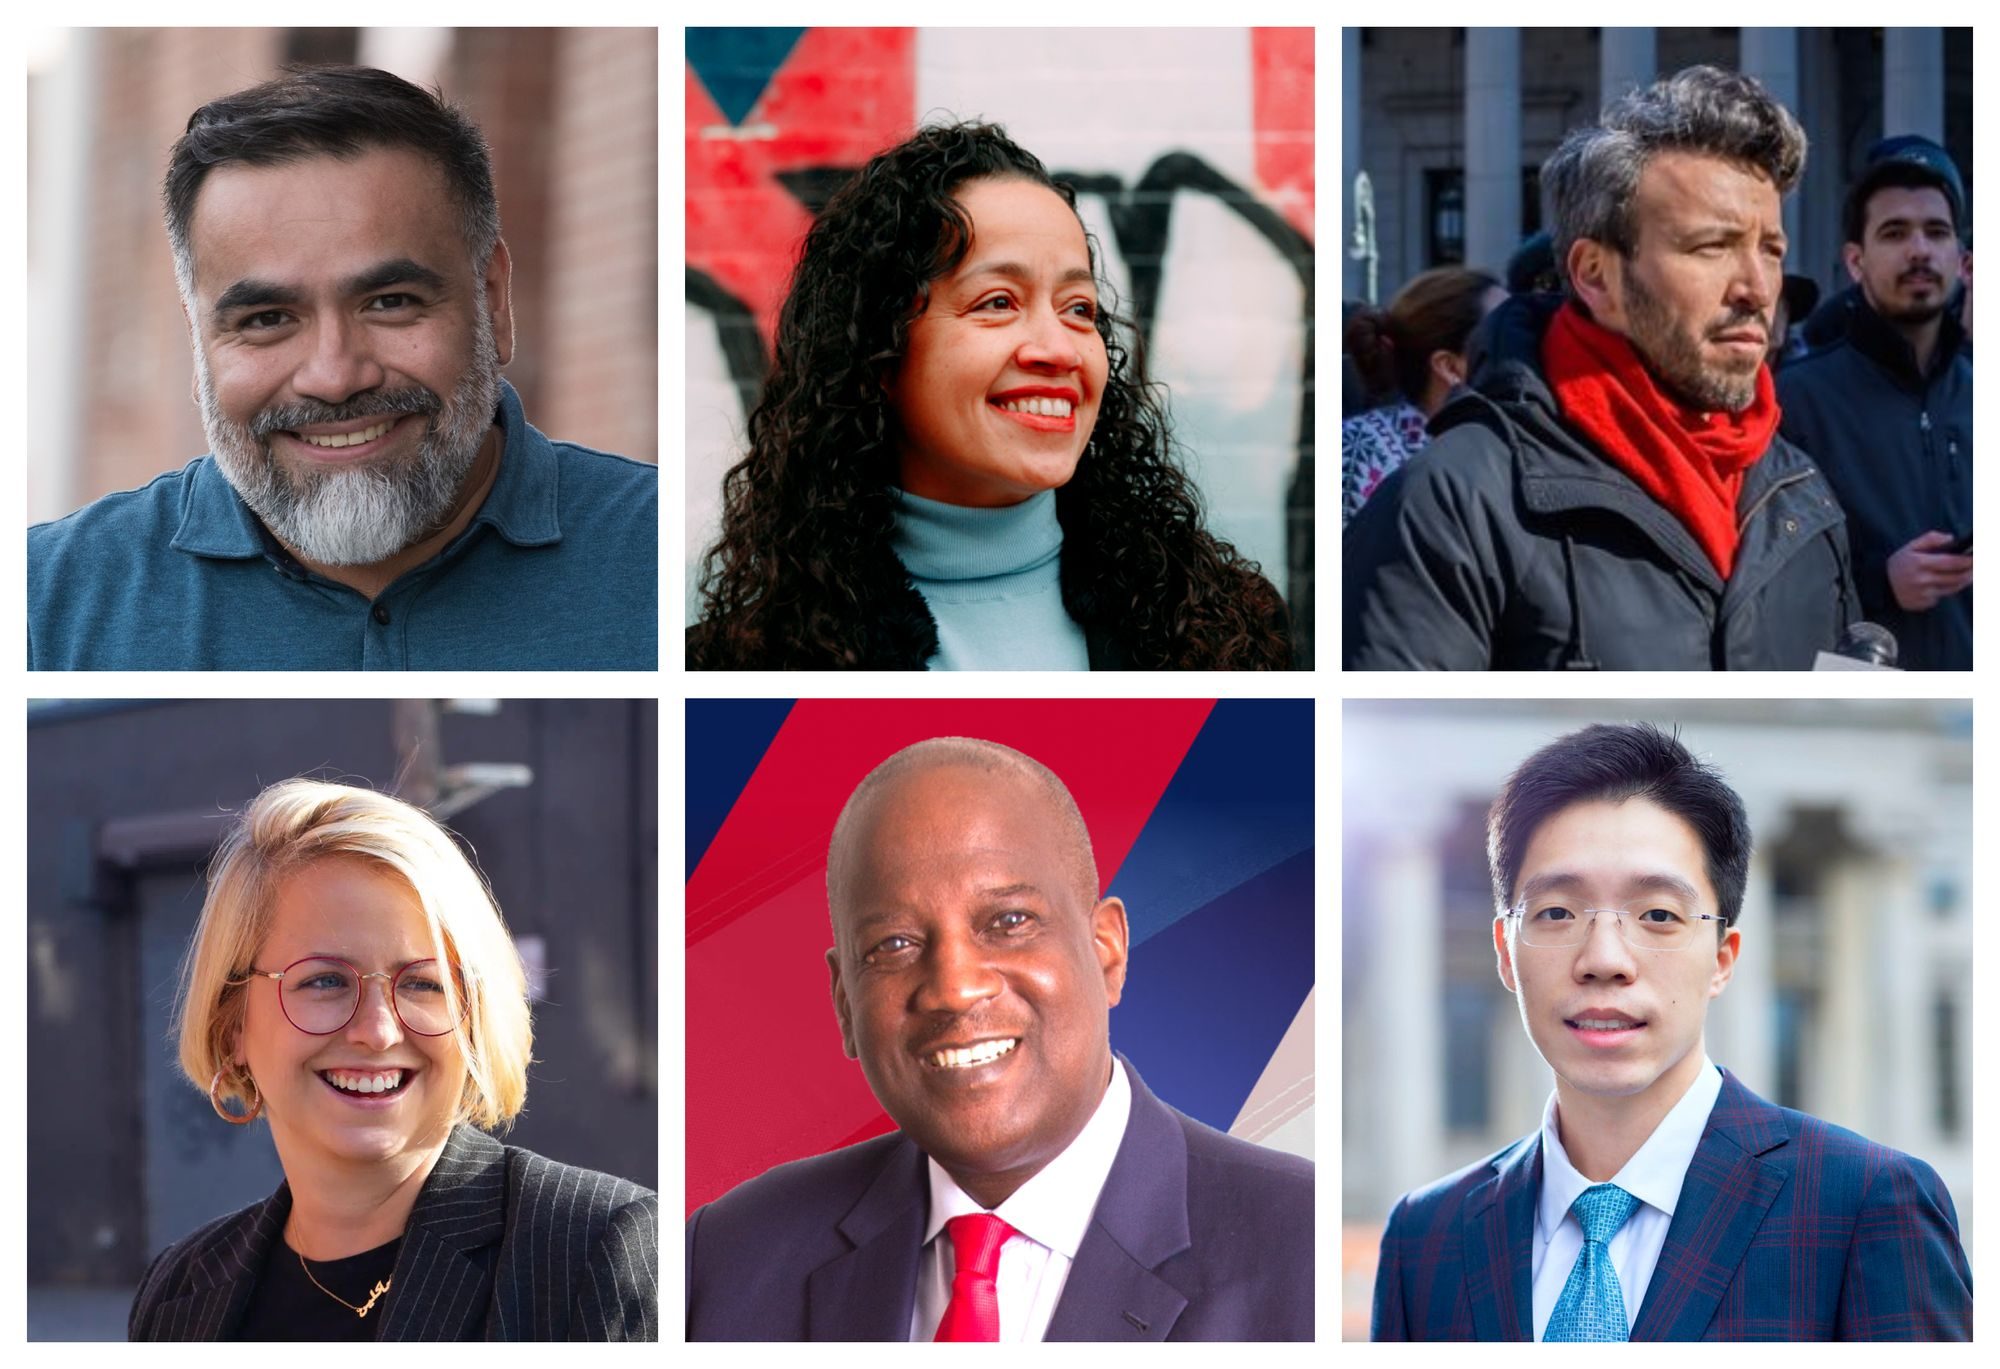 In Council District 38, Candidates Seek to Represent a Mosaic of Communities